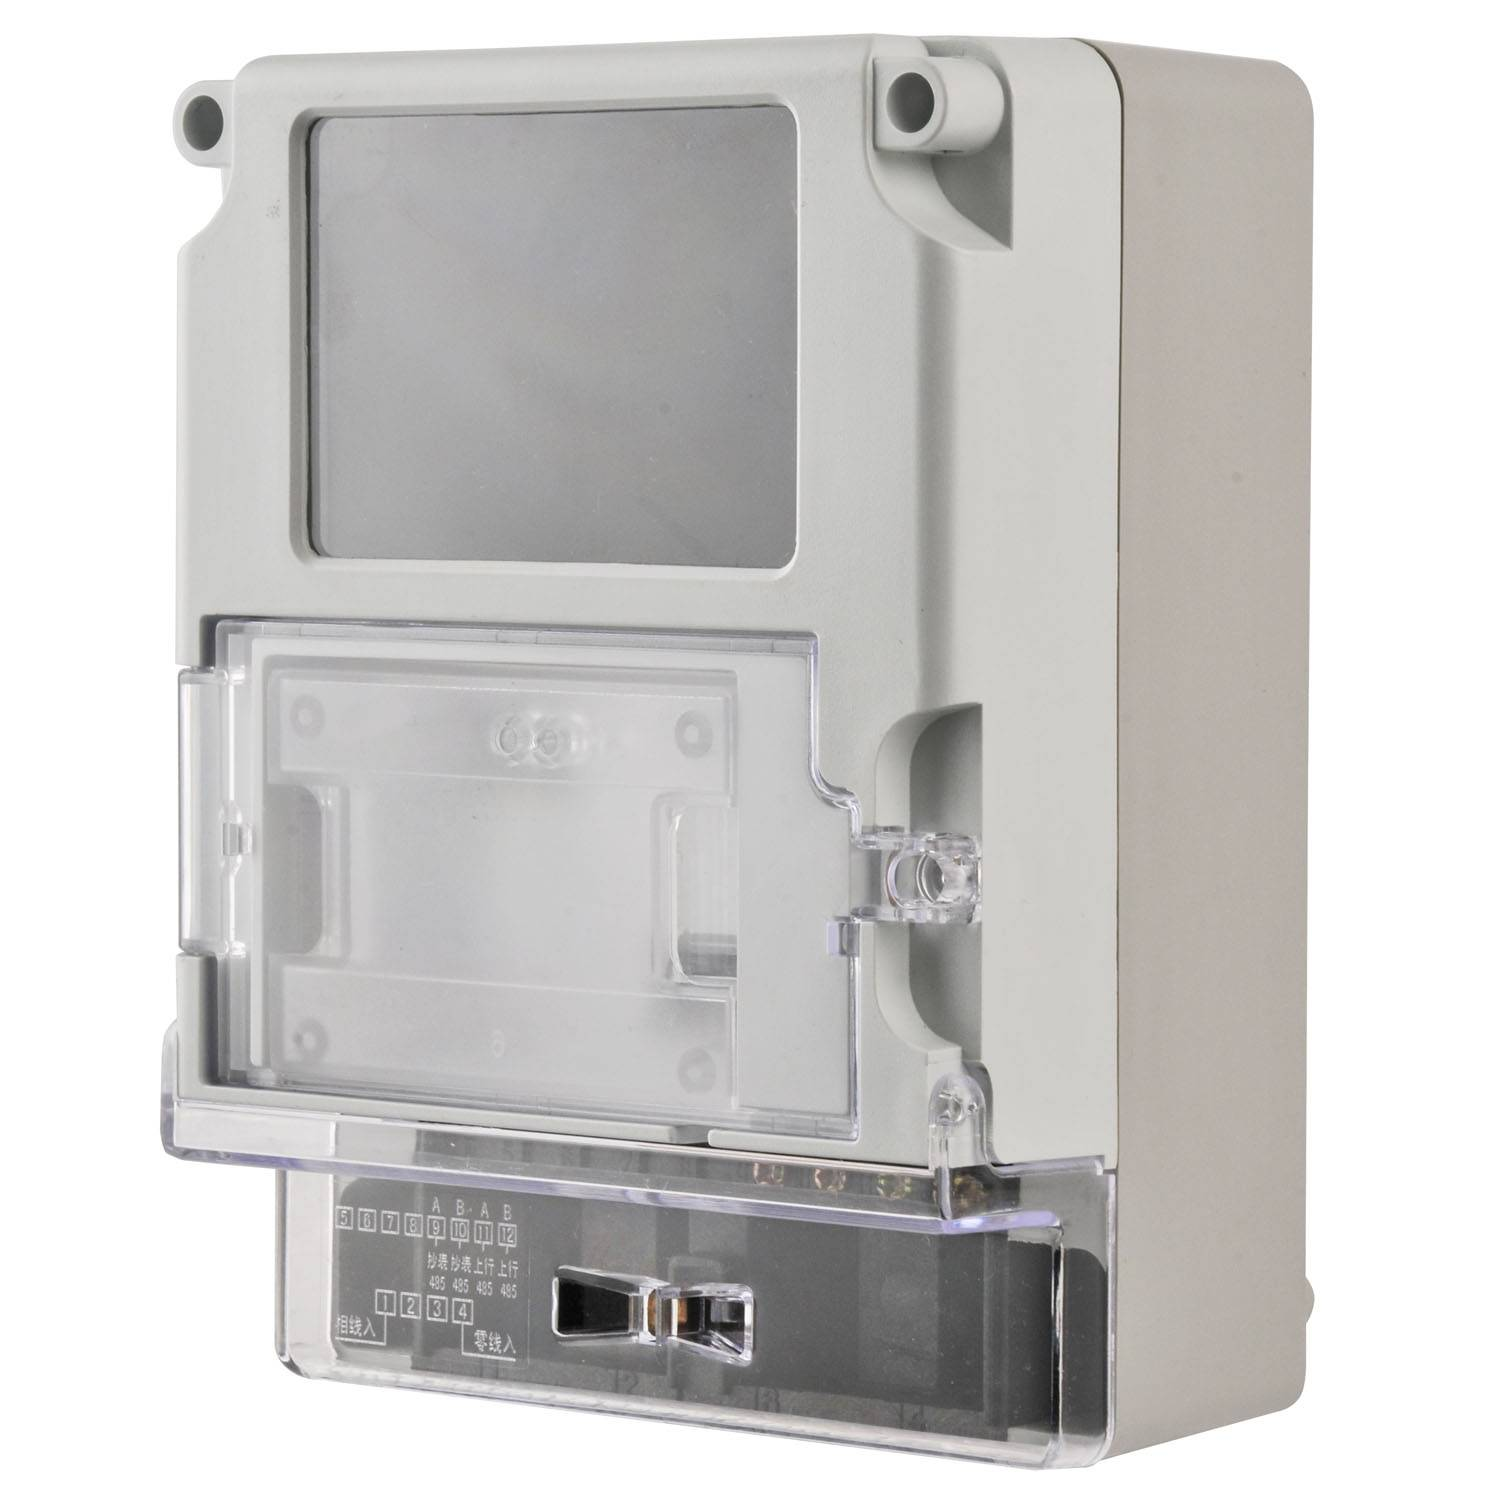 C047-2 Single-phase Electric Meter Case plastic enclosure